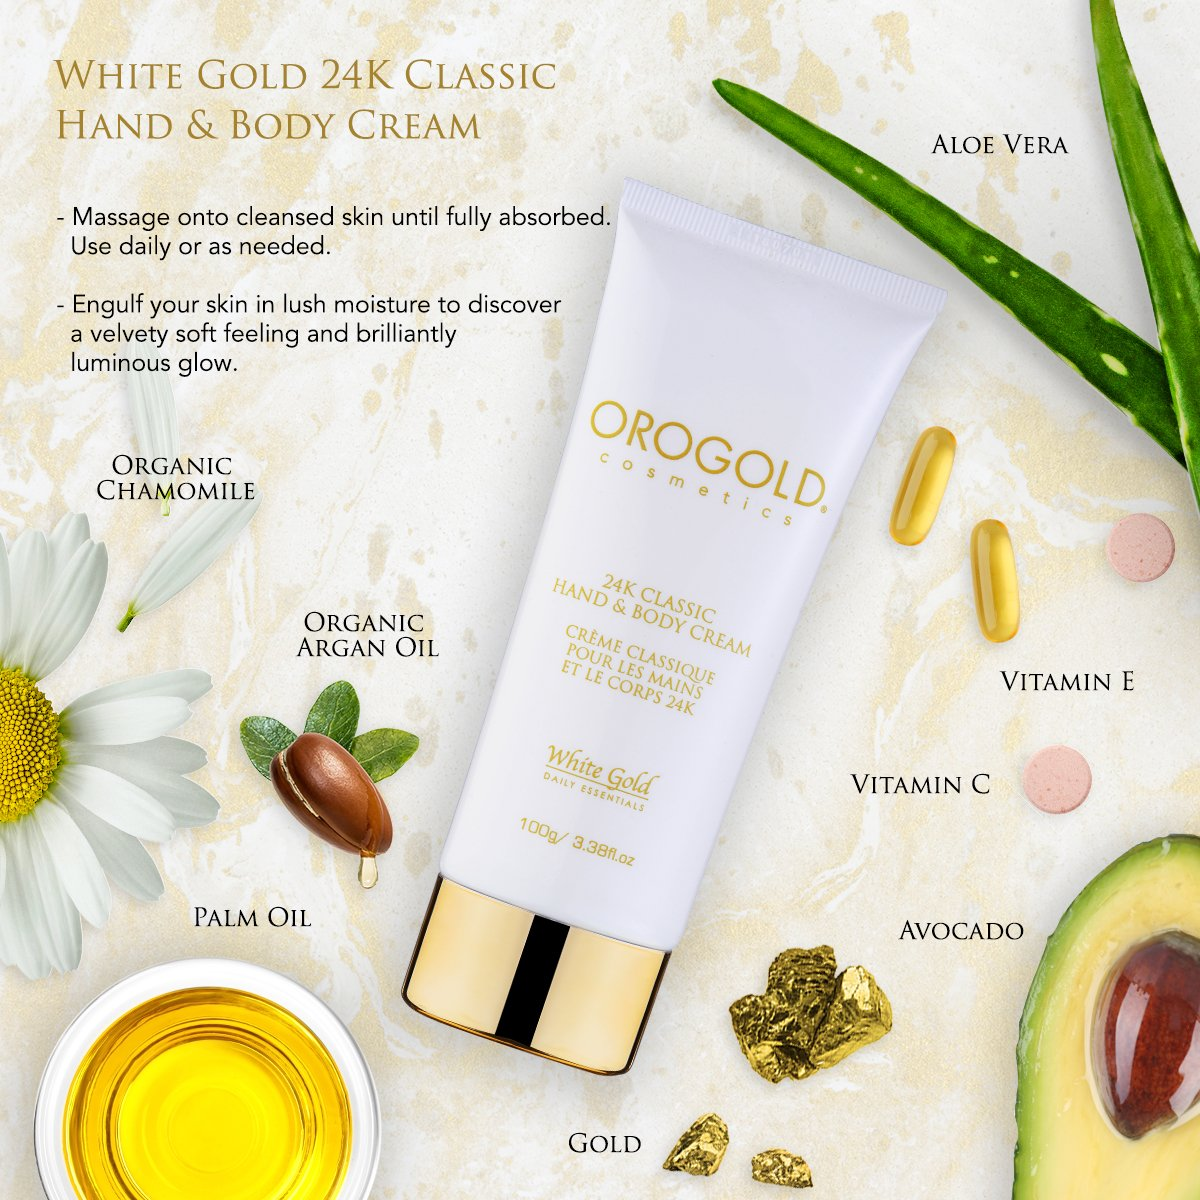 White Gold 24K Hand and Body Cream from OROGOLD Cosmetics – 100 ml, 3.38 fl. oz.